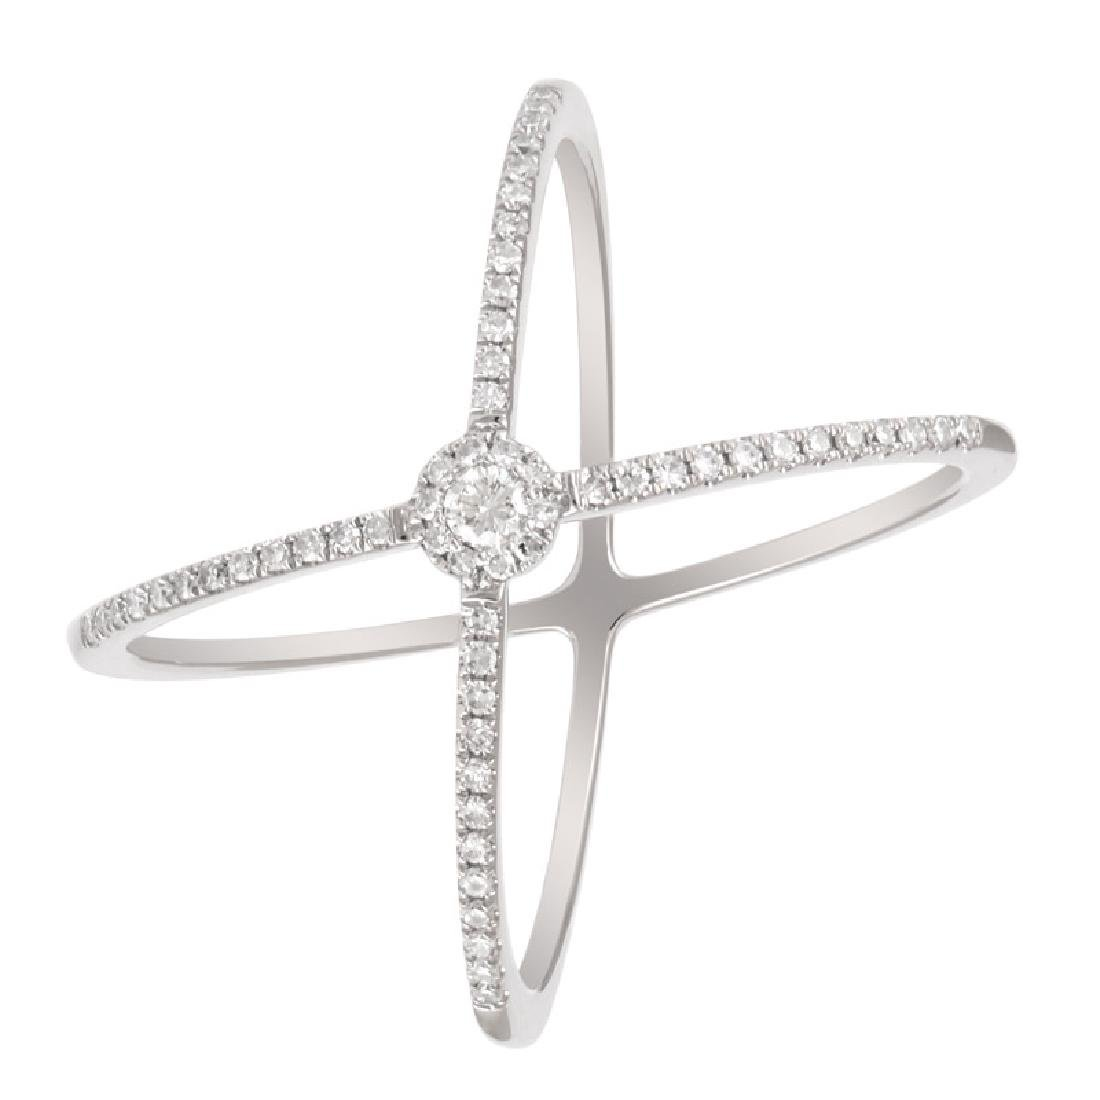 14KT White Gold Women's Diamond Ring